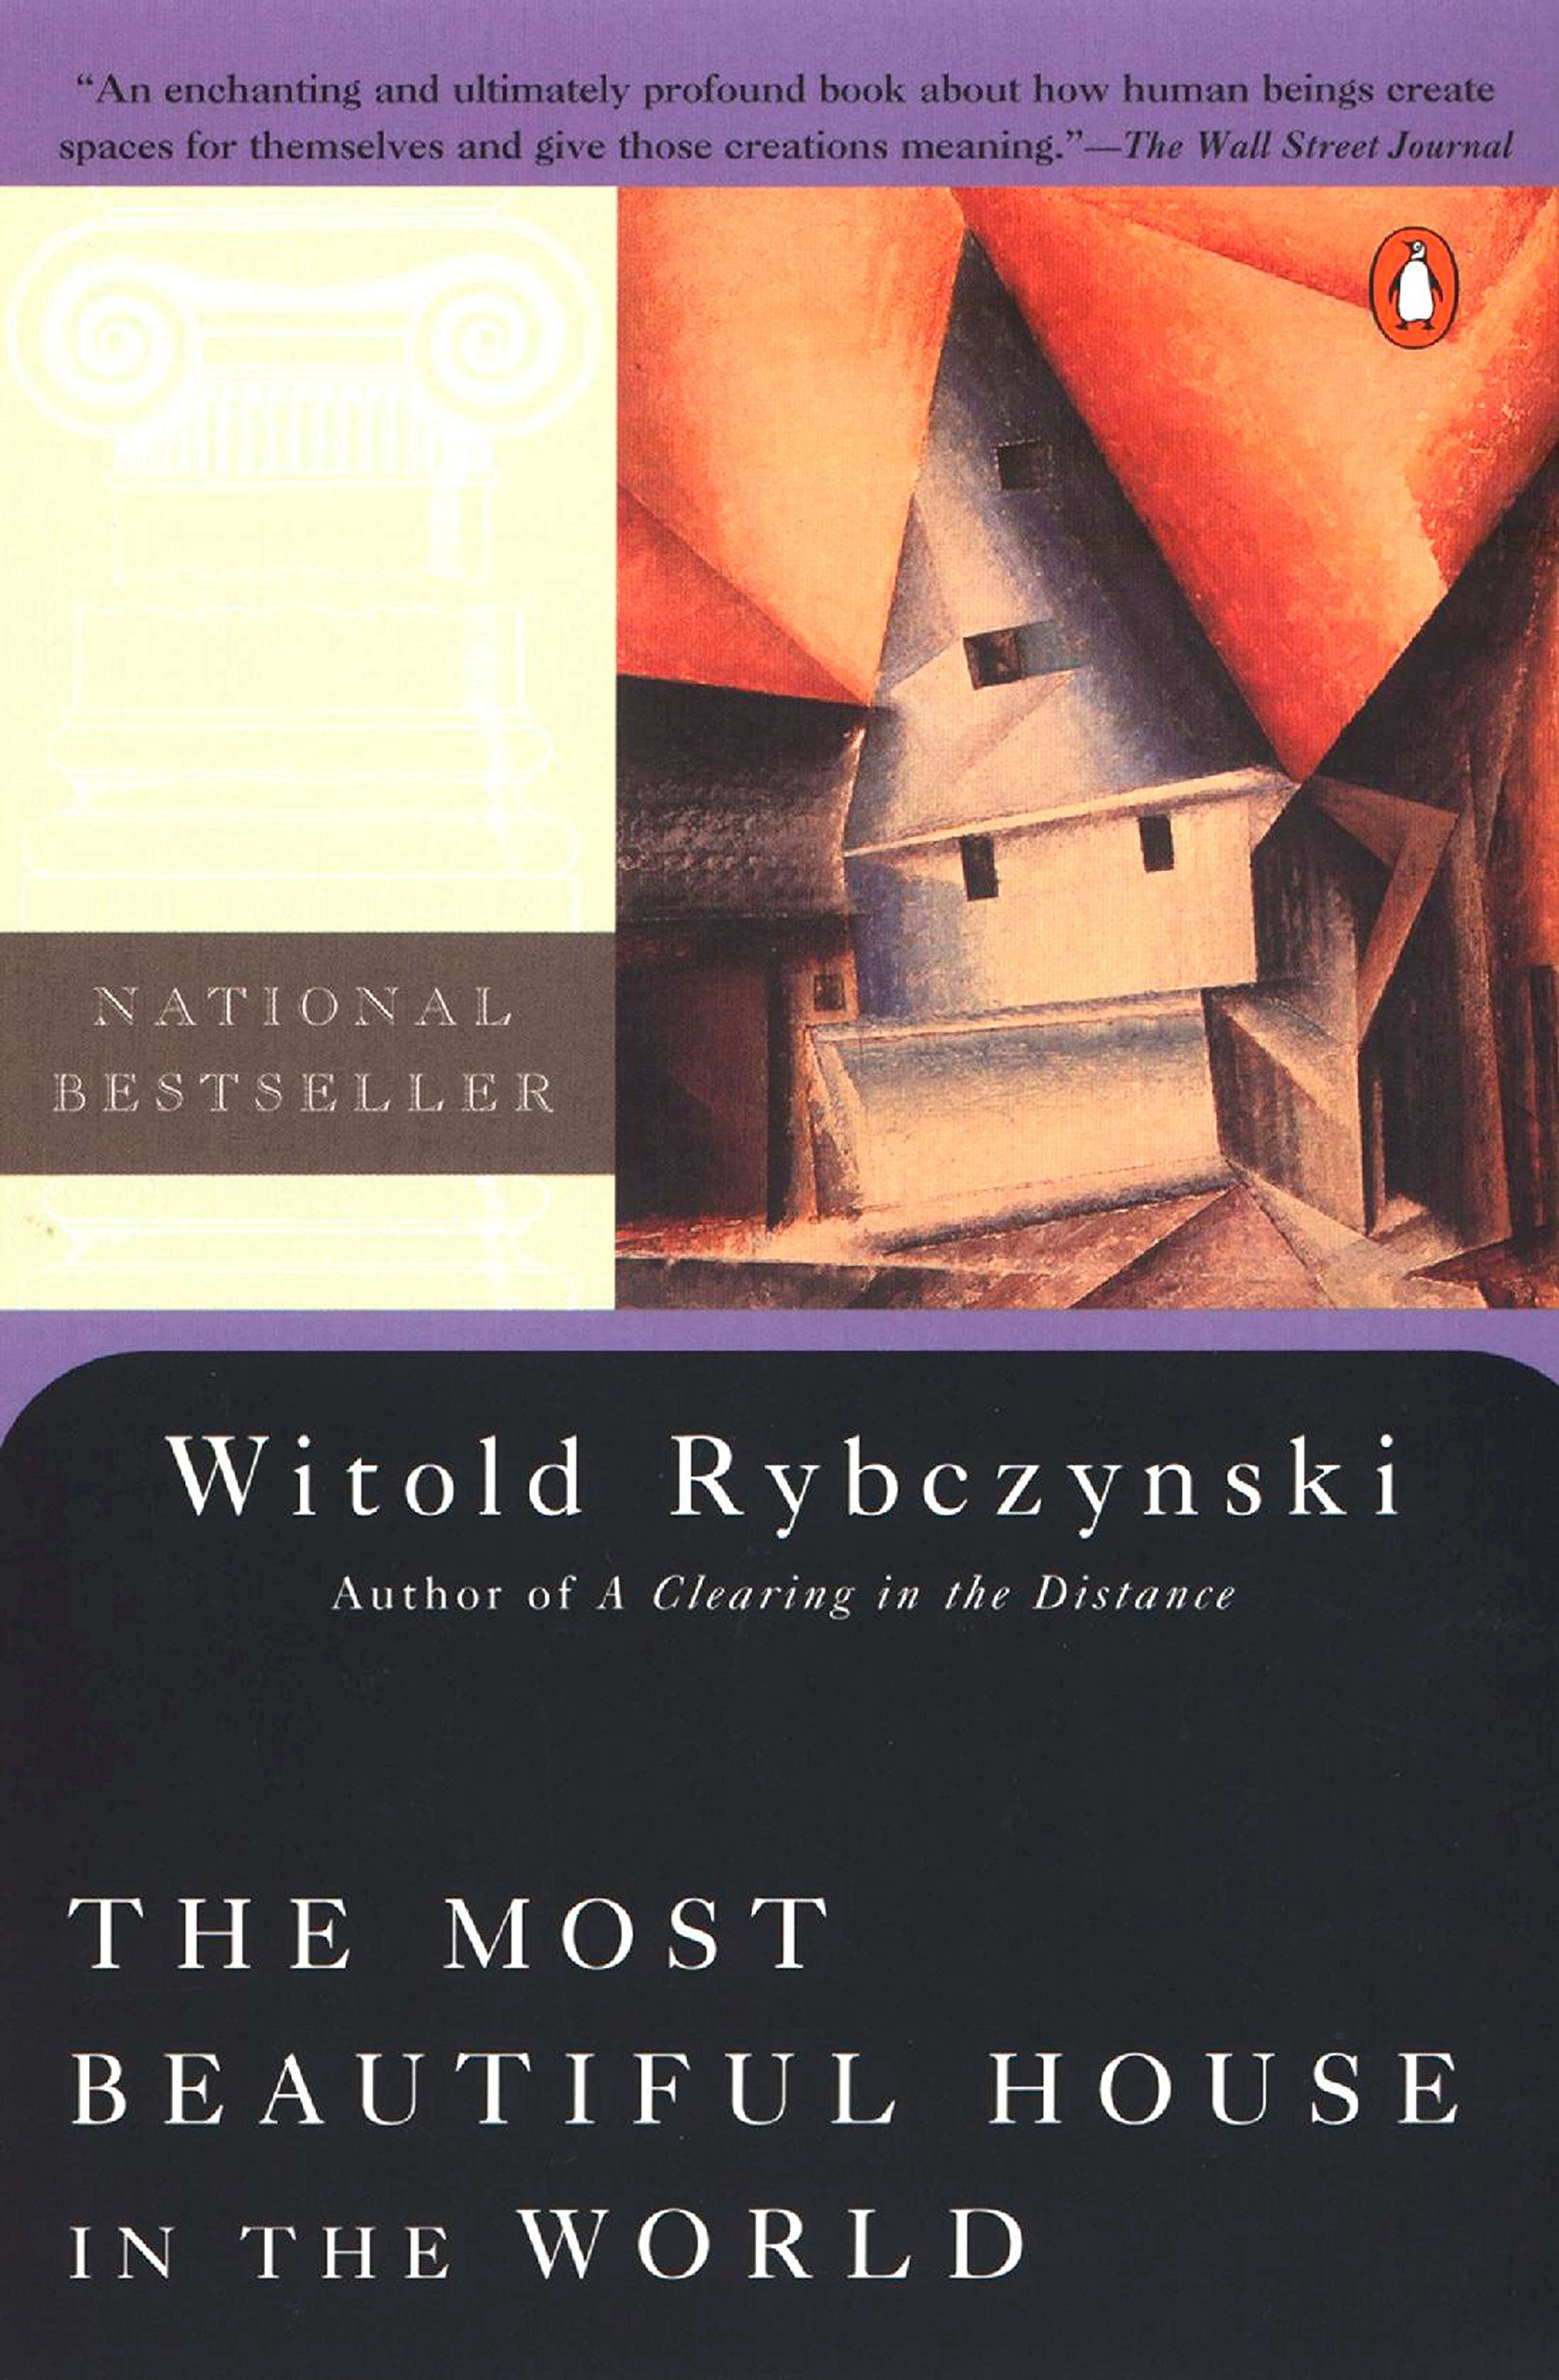 The Most Prettiest House In the World Inspirational the Most Beautiful House In the World Amazon Witold